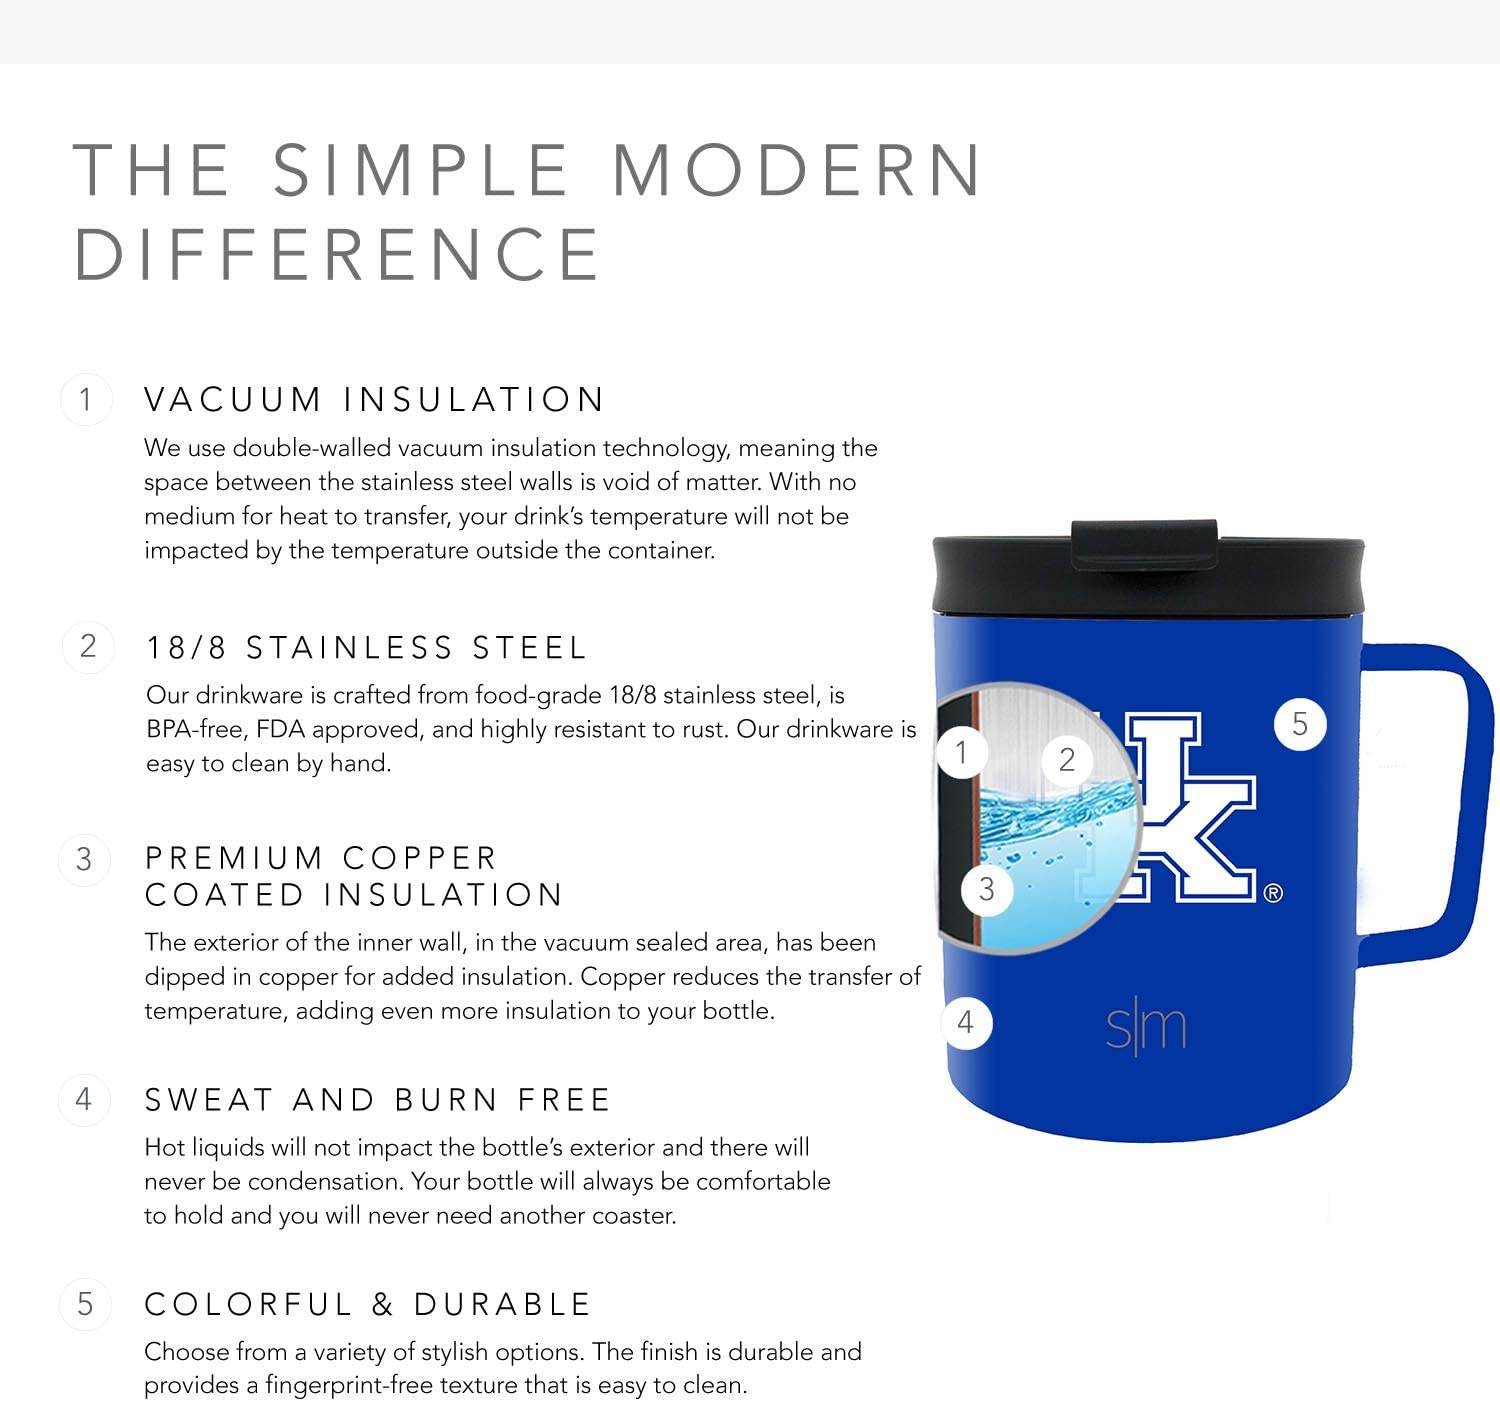 Simple Modern 12oz Scout Mug with Flip Lid University of Kentucky Coffee Mug Travel Stainless Steel Gifts for Men Women Dad Fathers Day: NCAA Kentucky